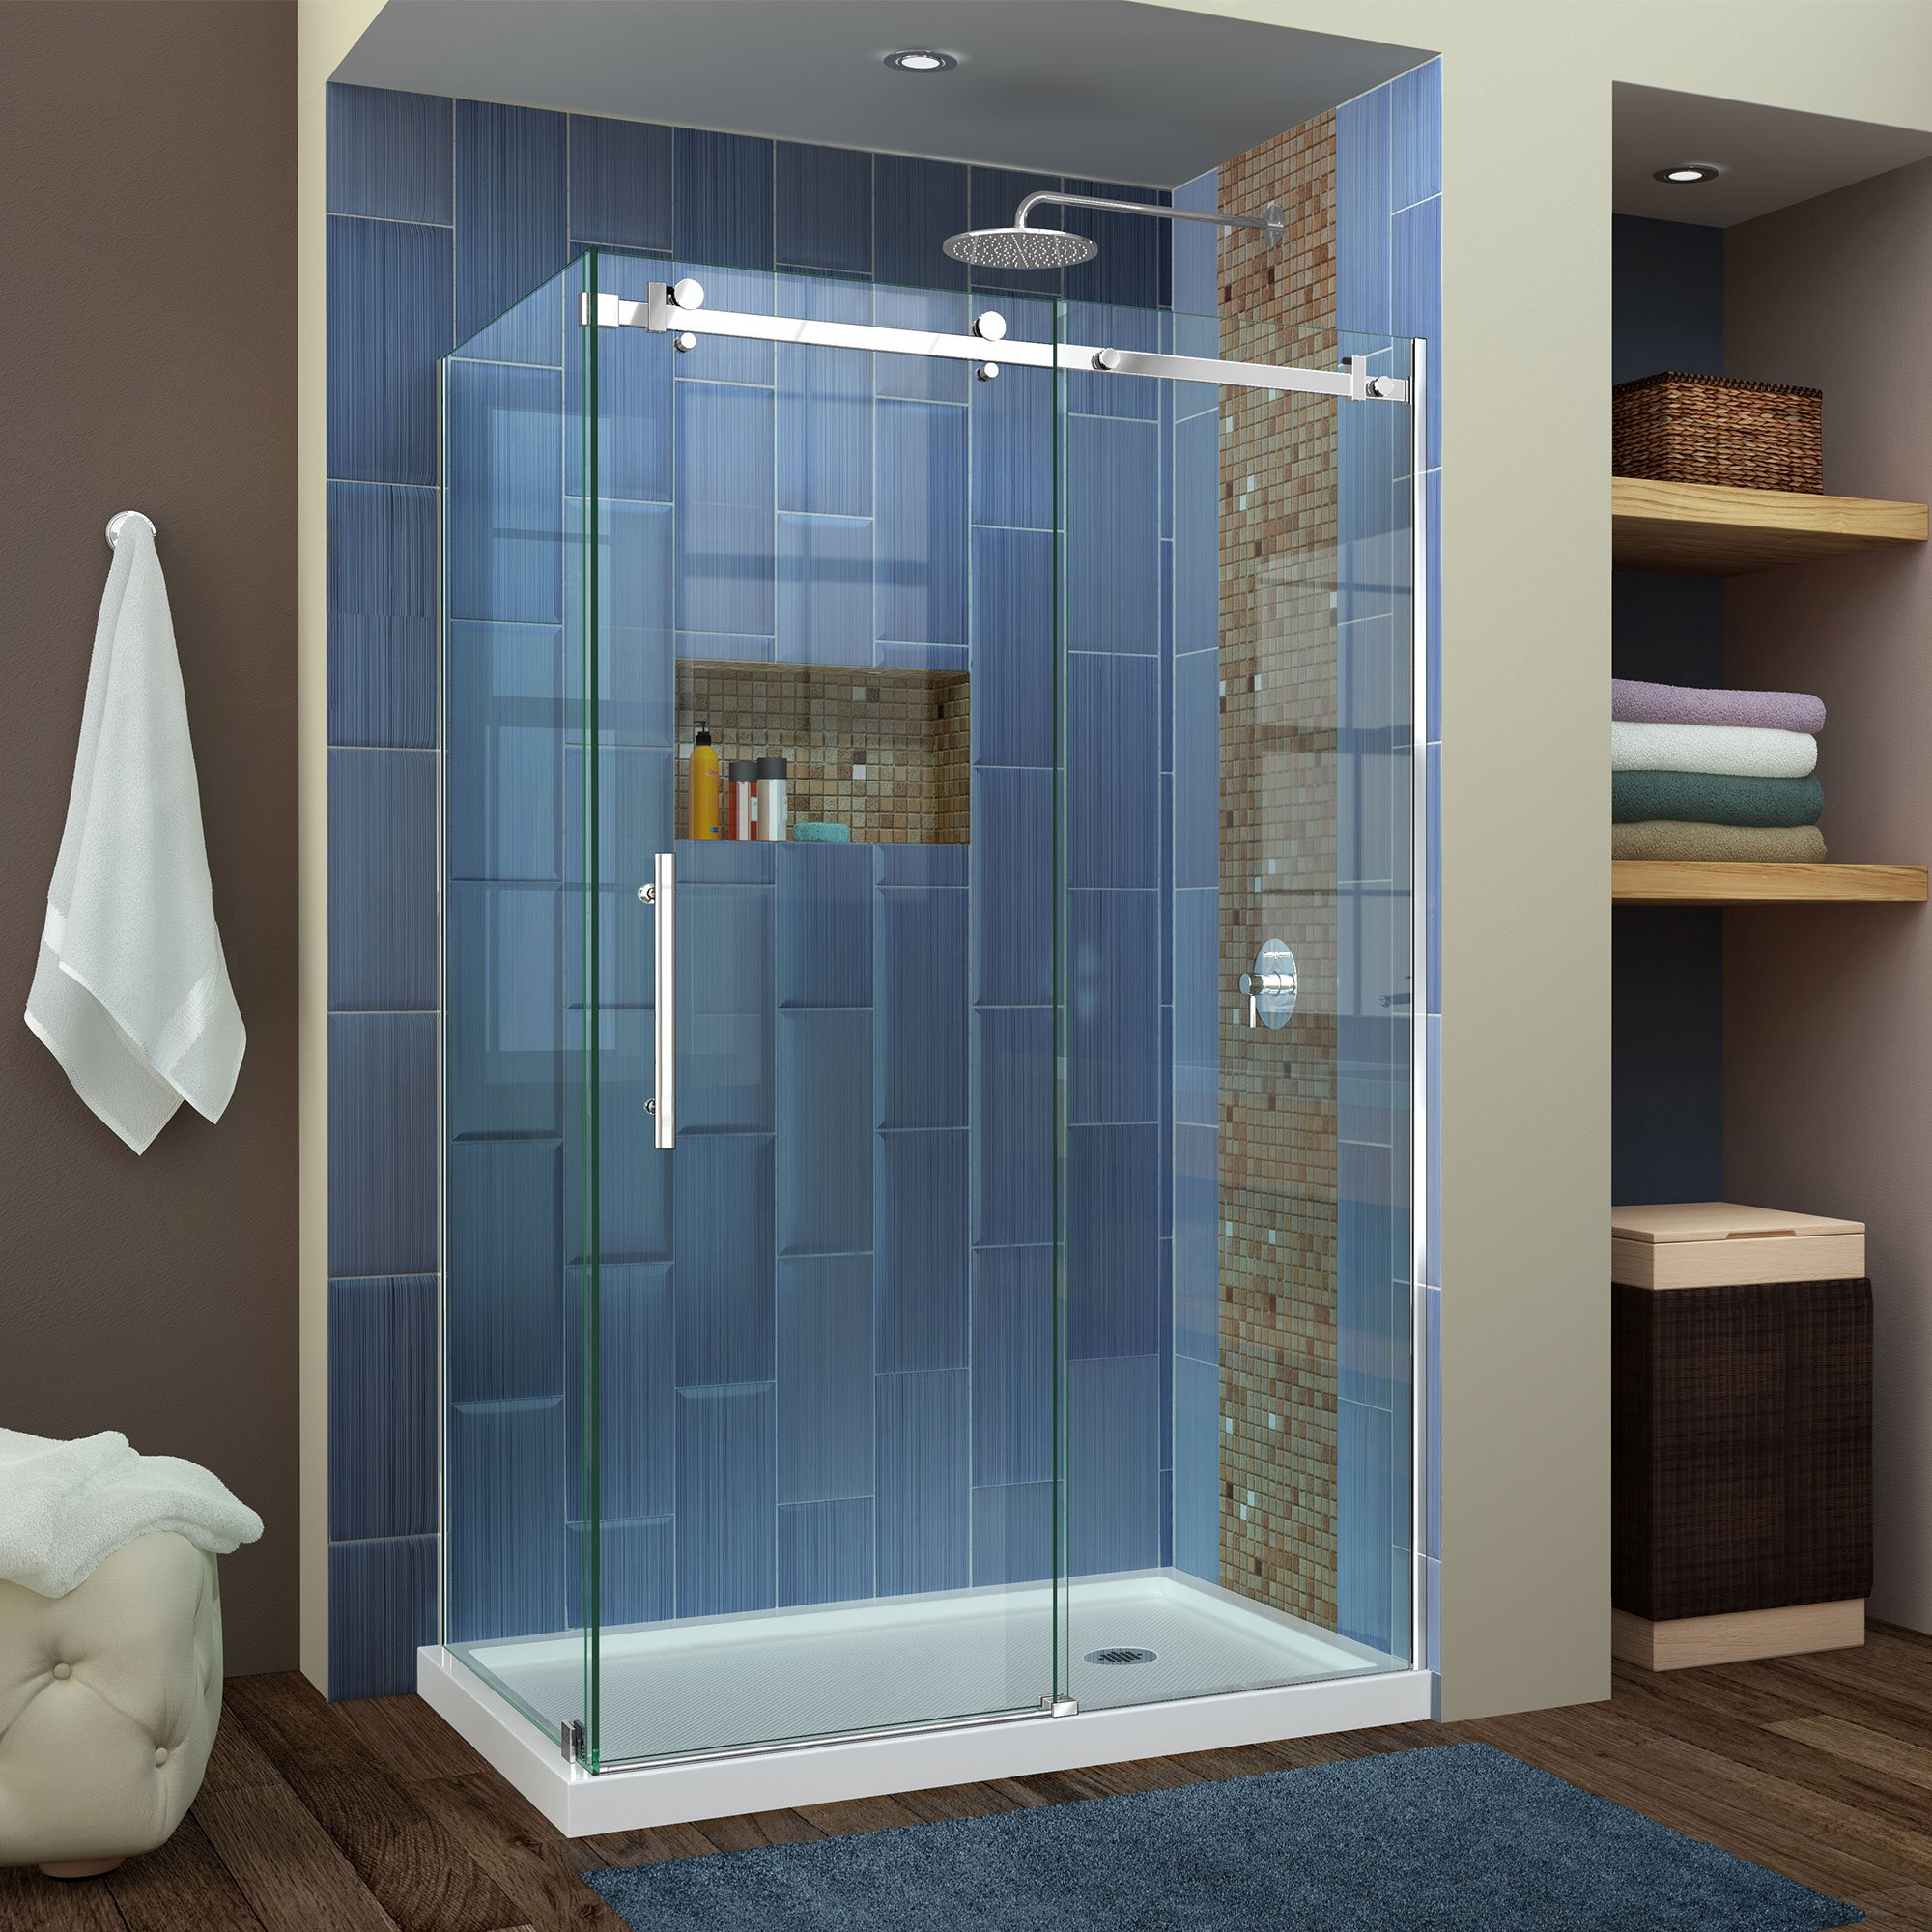 DreamLine SHEN-6434480-08 Enigma Air 48-3/8 In. W x 34-3/4 In. D Frameless Shower Enclosure In Polished Stainless Steel